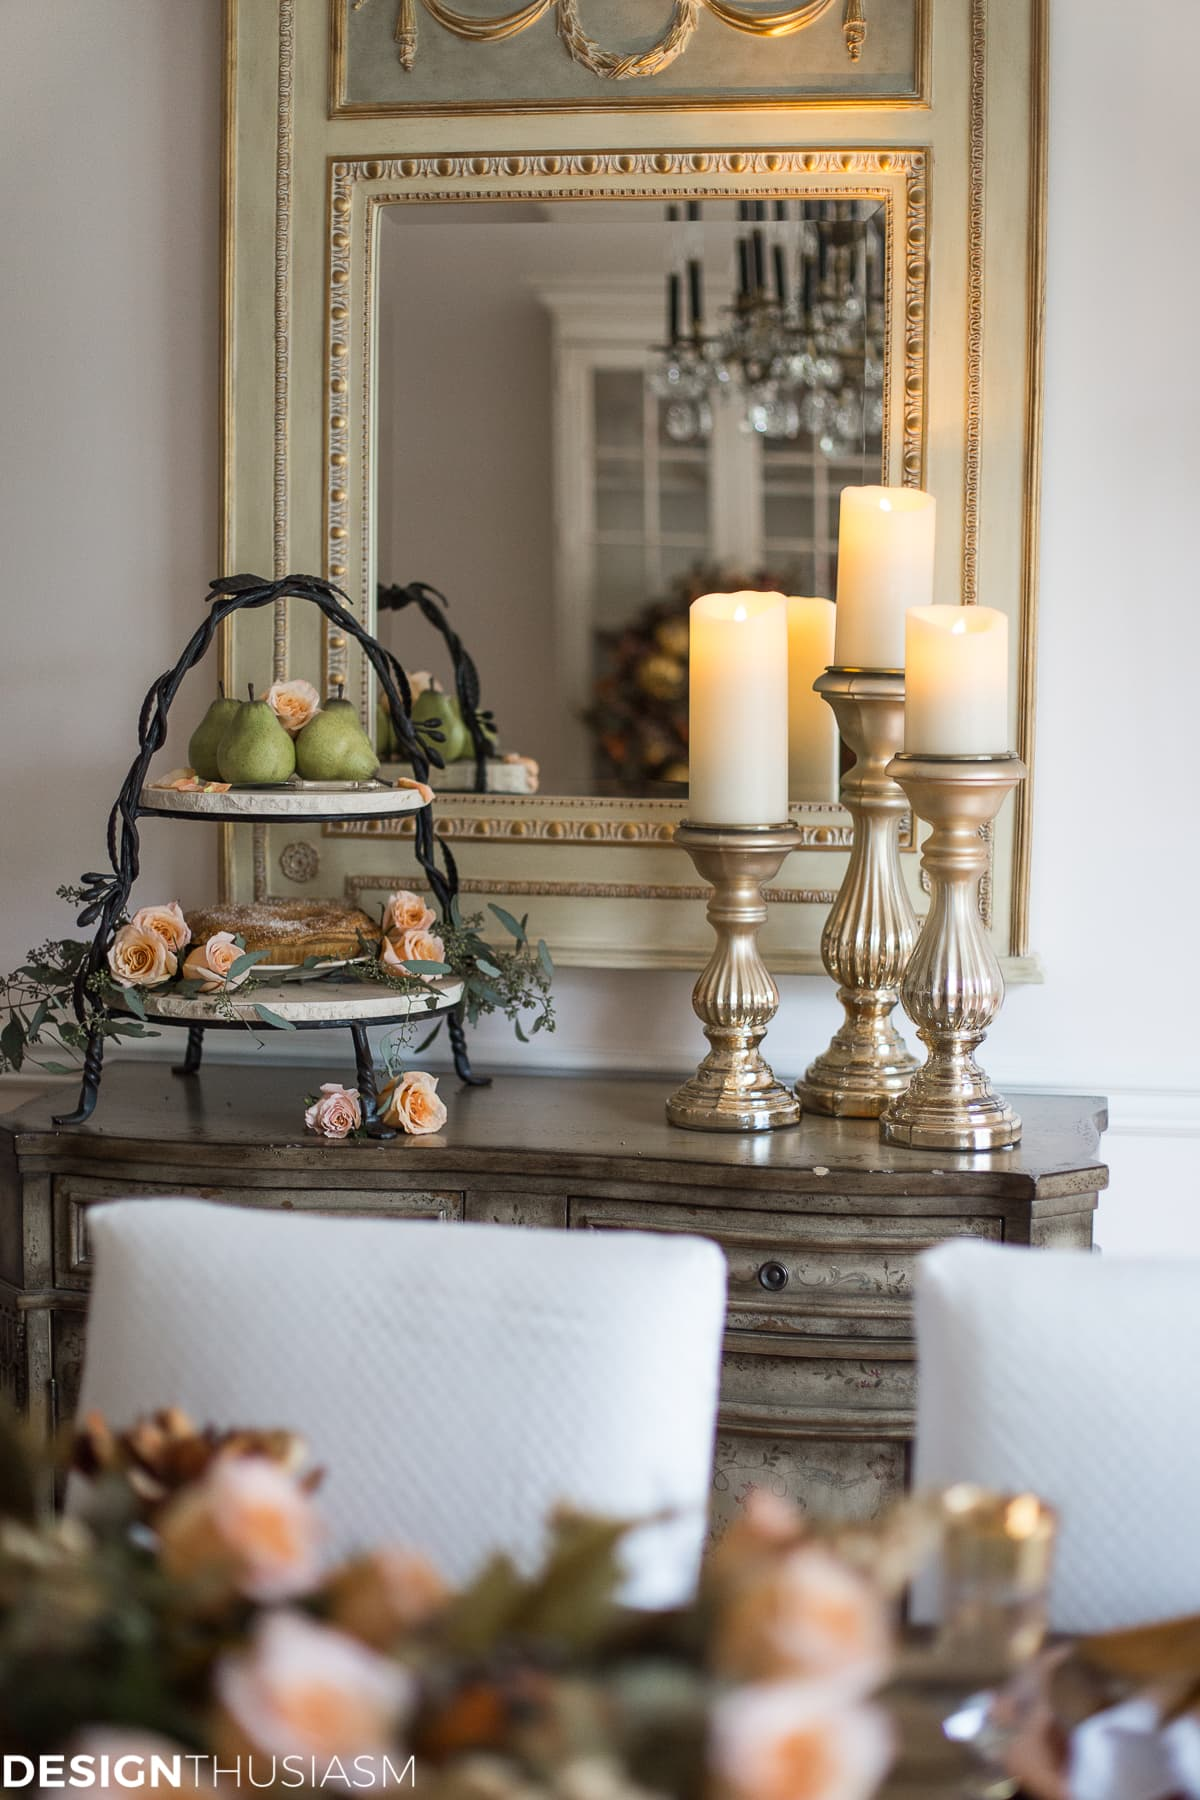 Using Fall Door Decorations to Dress Up Your Thanksgiving Table - designthusiasm.com